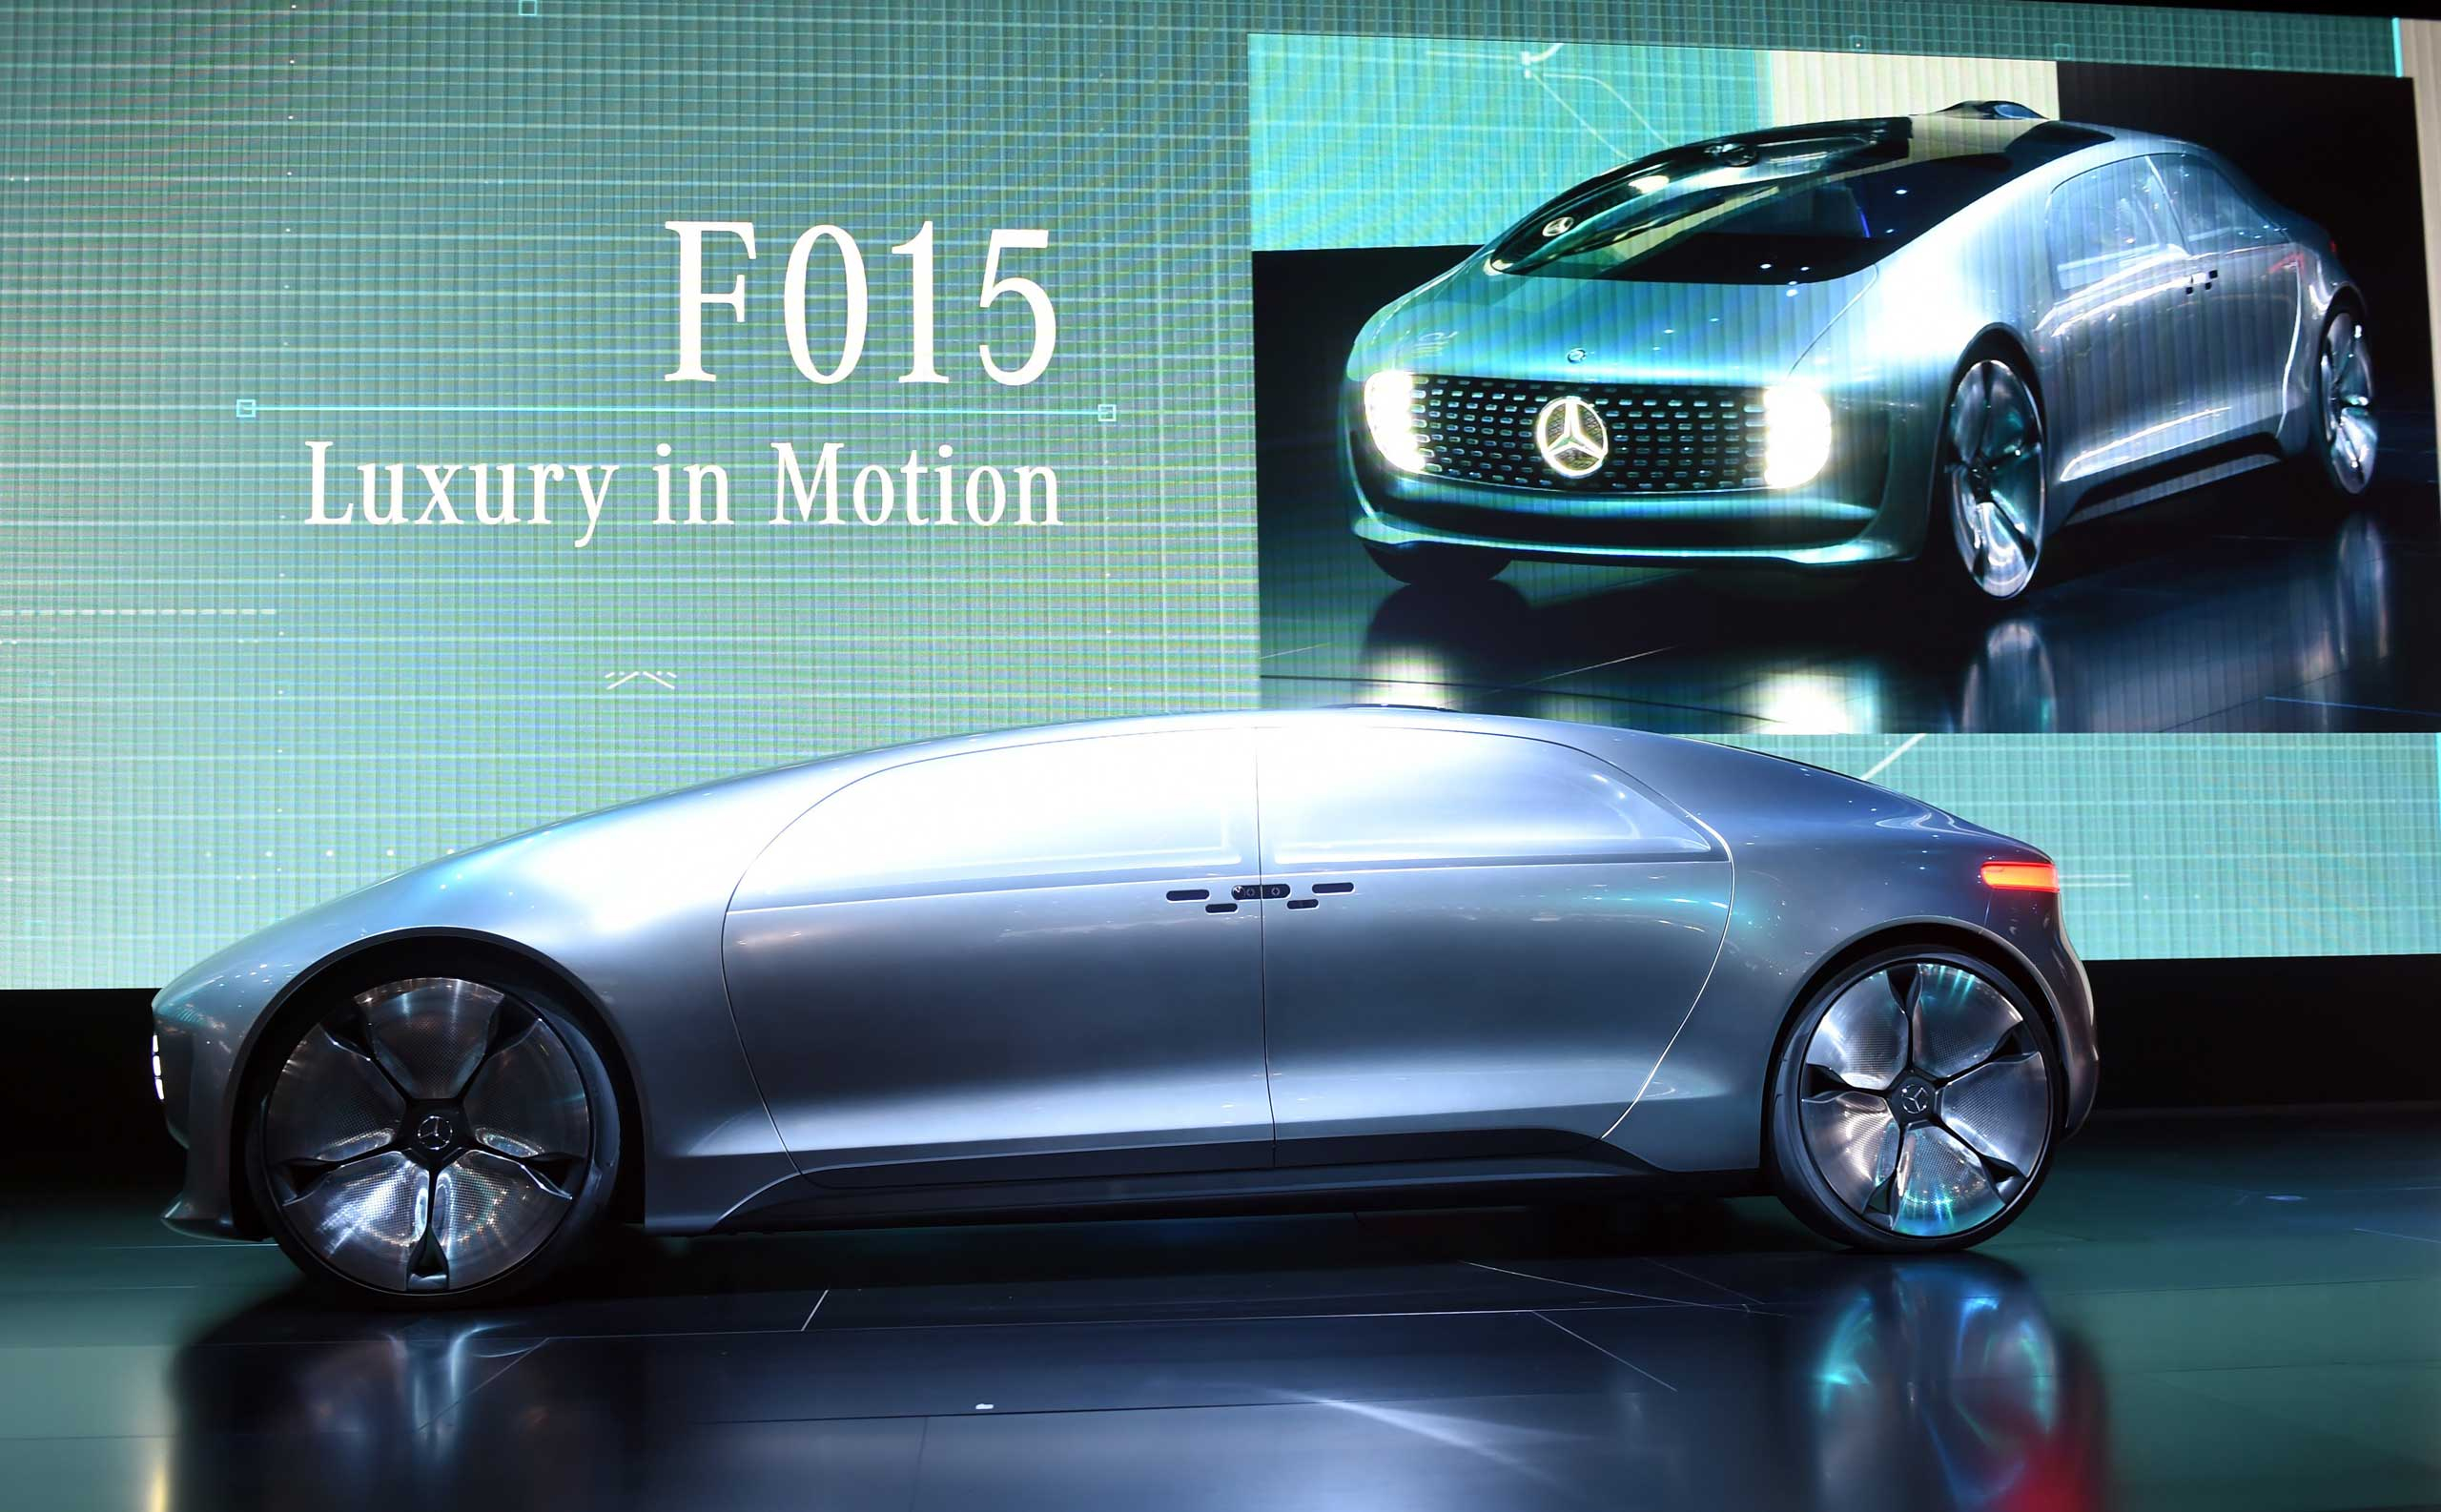 The Mercedes-Benz F 015 Coupe is presented during the media preview at the Cobo Arena on Jan. 12, 2015 in Detroit.